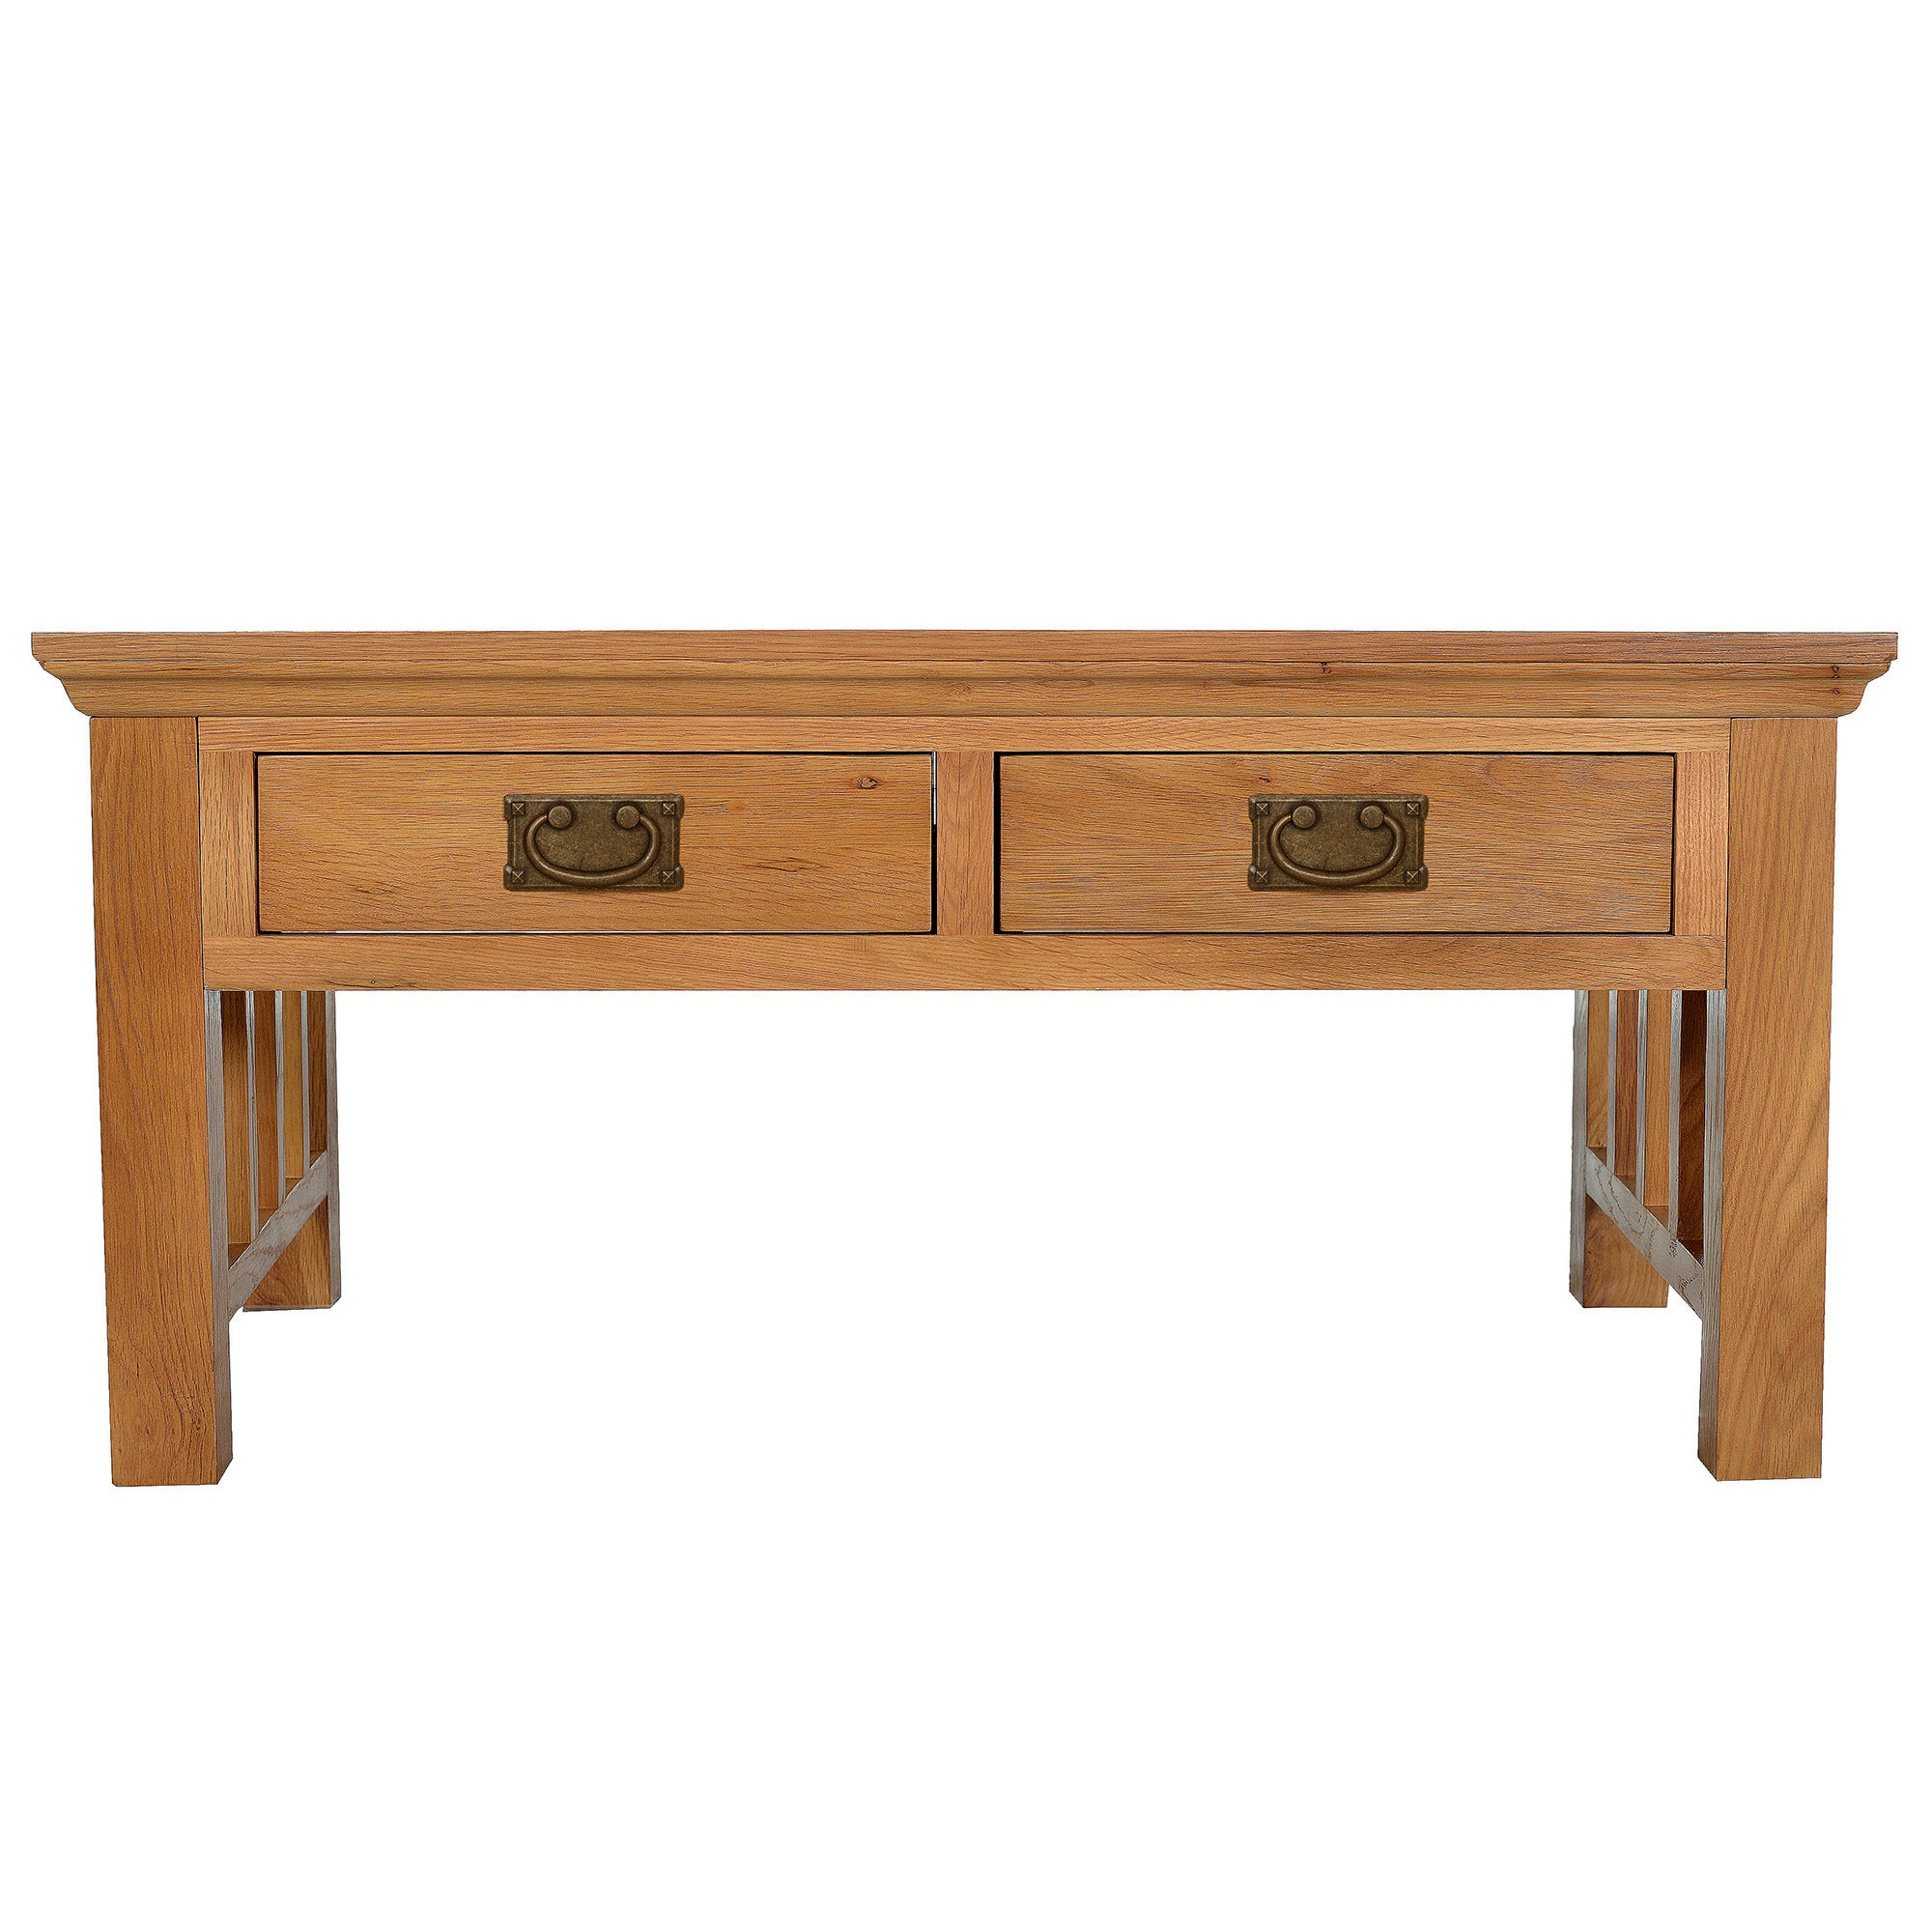 Dorchester Oak Coffee Table Light Brown  Natural